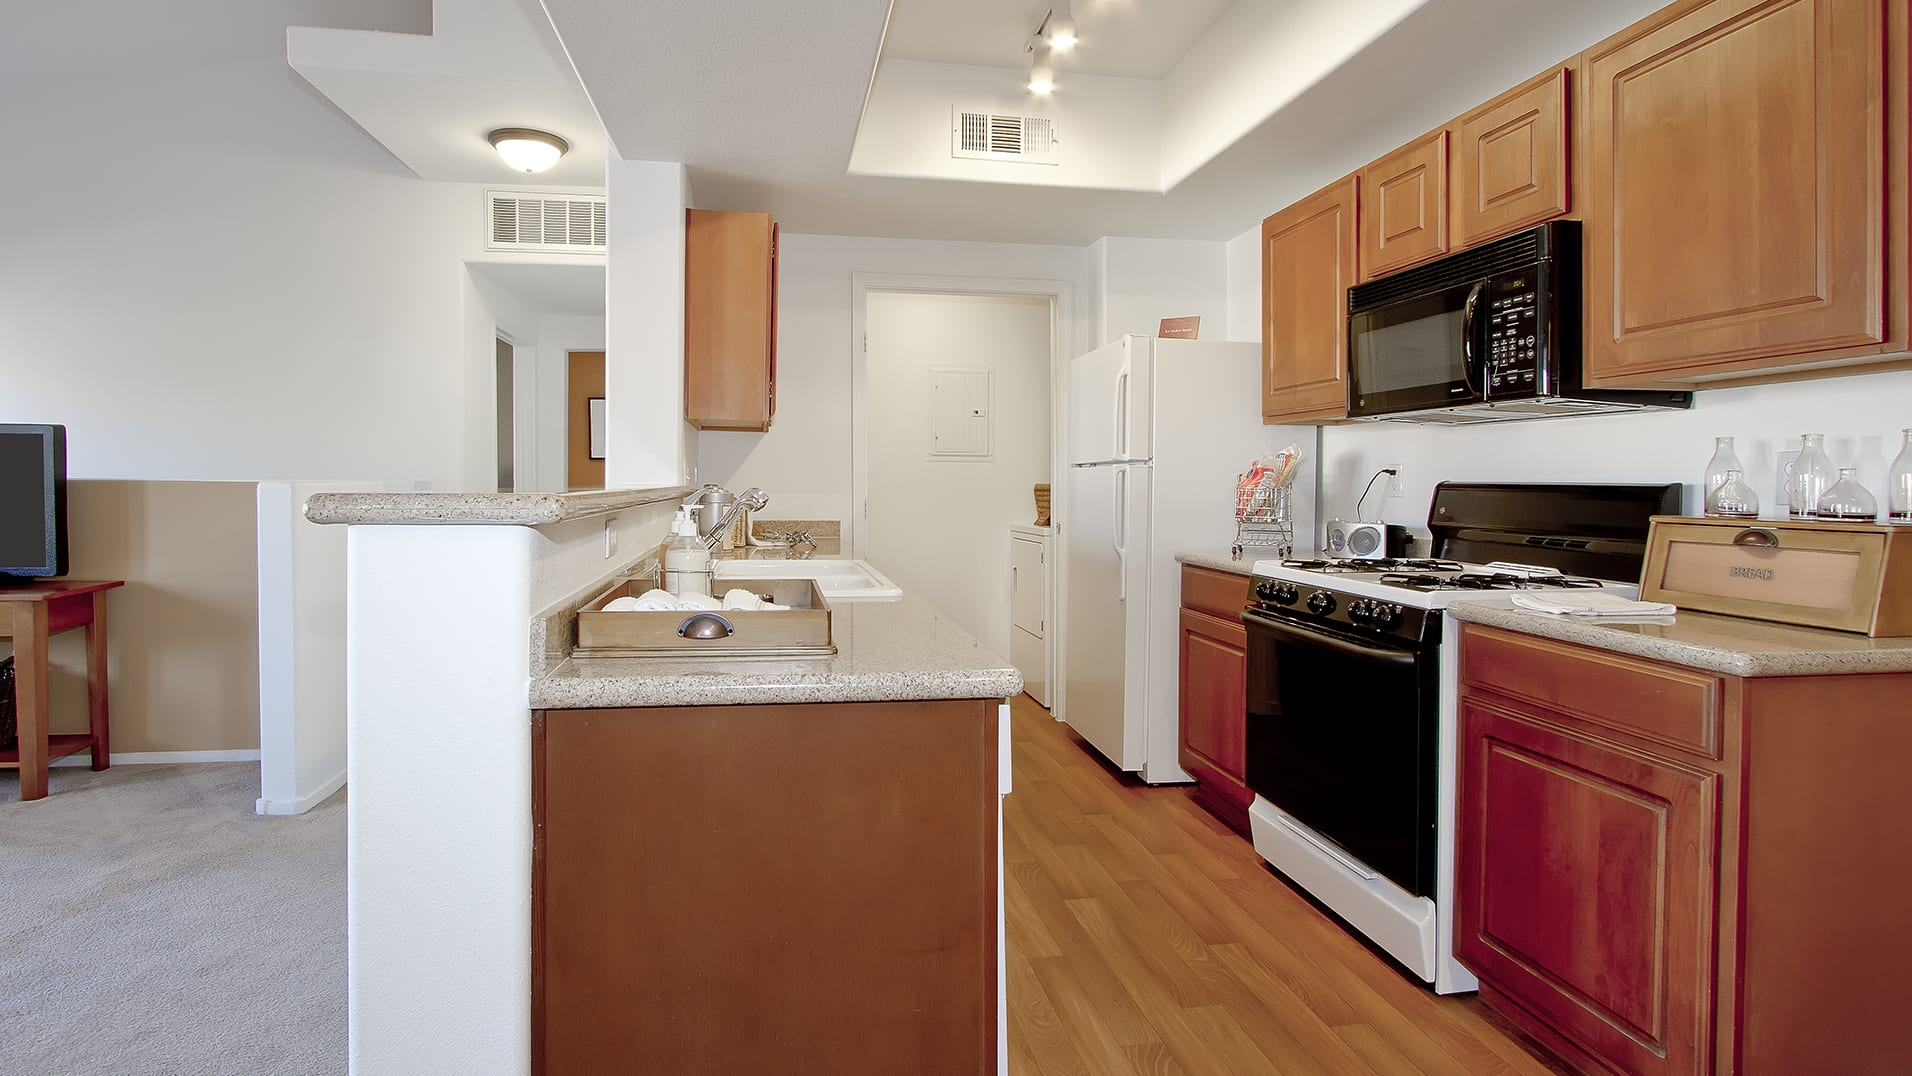 Kitchen with full appliance package, wood-style flooring, and granite countertops. A partial wall looks out into the carpeted living room. Beyond the kitchen is the laundry room with washer and dryer.